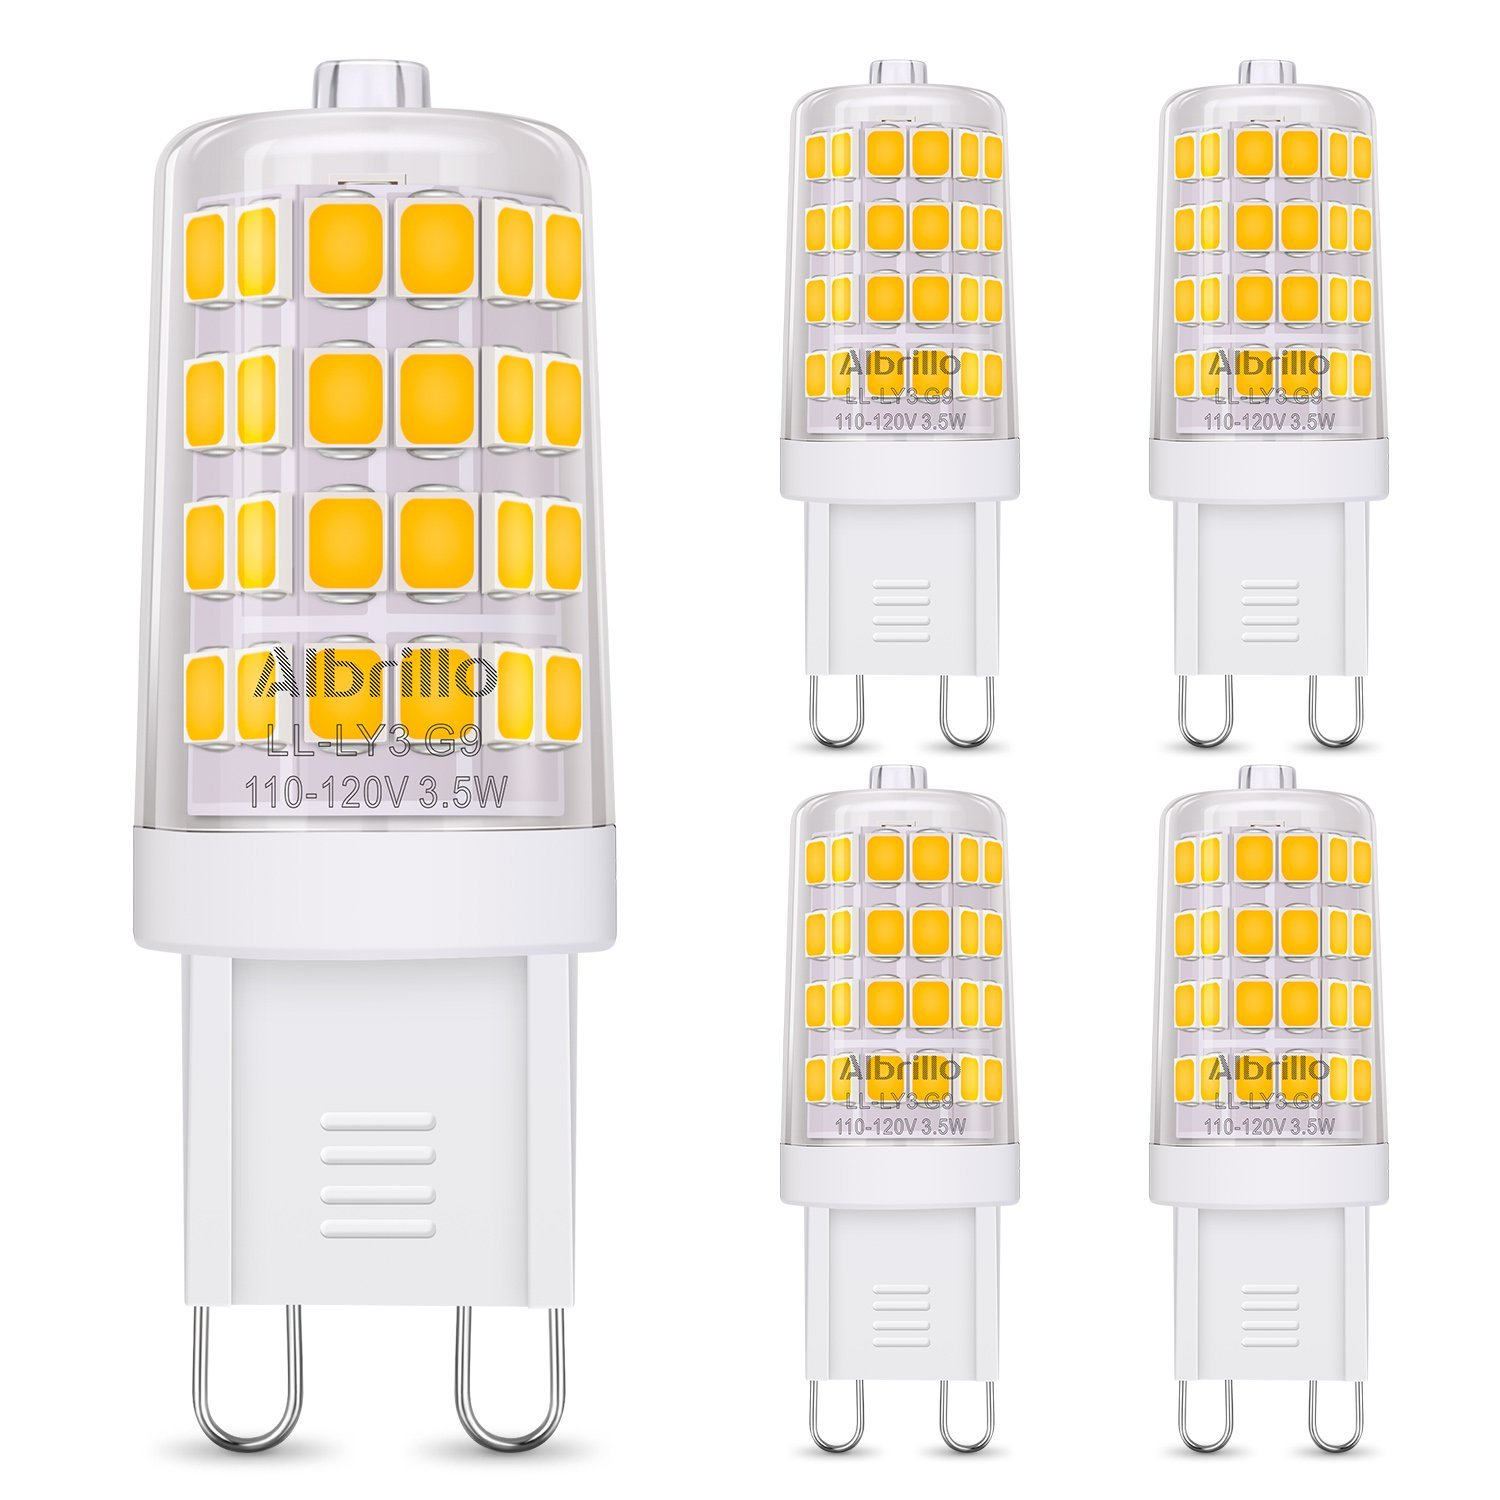 Albrillo Dimmable G9 LED Bulb, 40W Halogen Bulb Equivalent LED Light Bulbs for Chandelier, Wall Sconce, Warm White 3000K, Bi Pin, 5 Pack